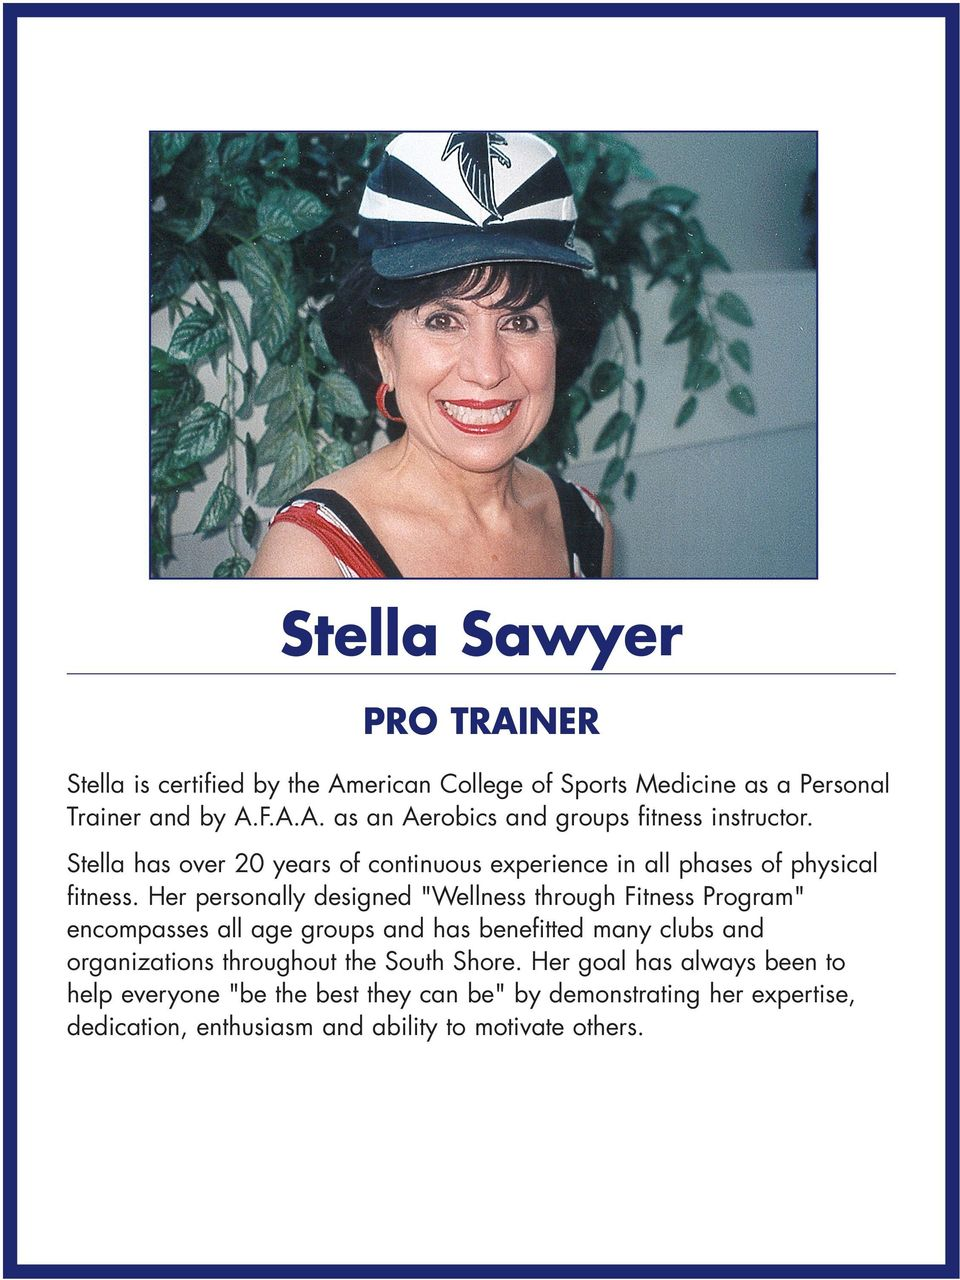 "Her personally designed ""Wellness through Fitness Program"" encompasses all age groups and has benefitted many clubs and organizations"